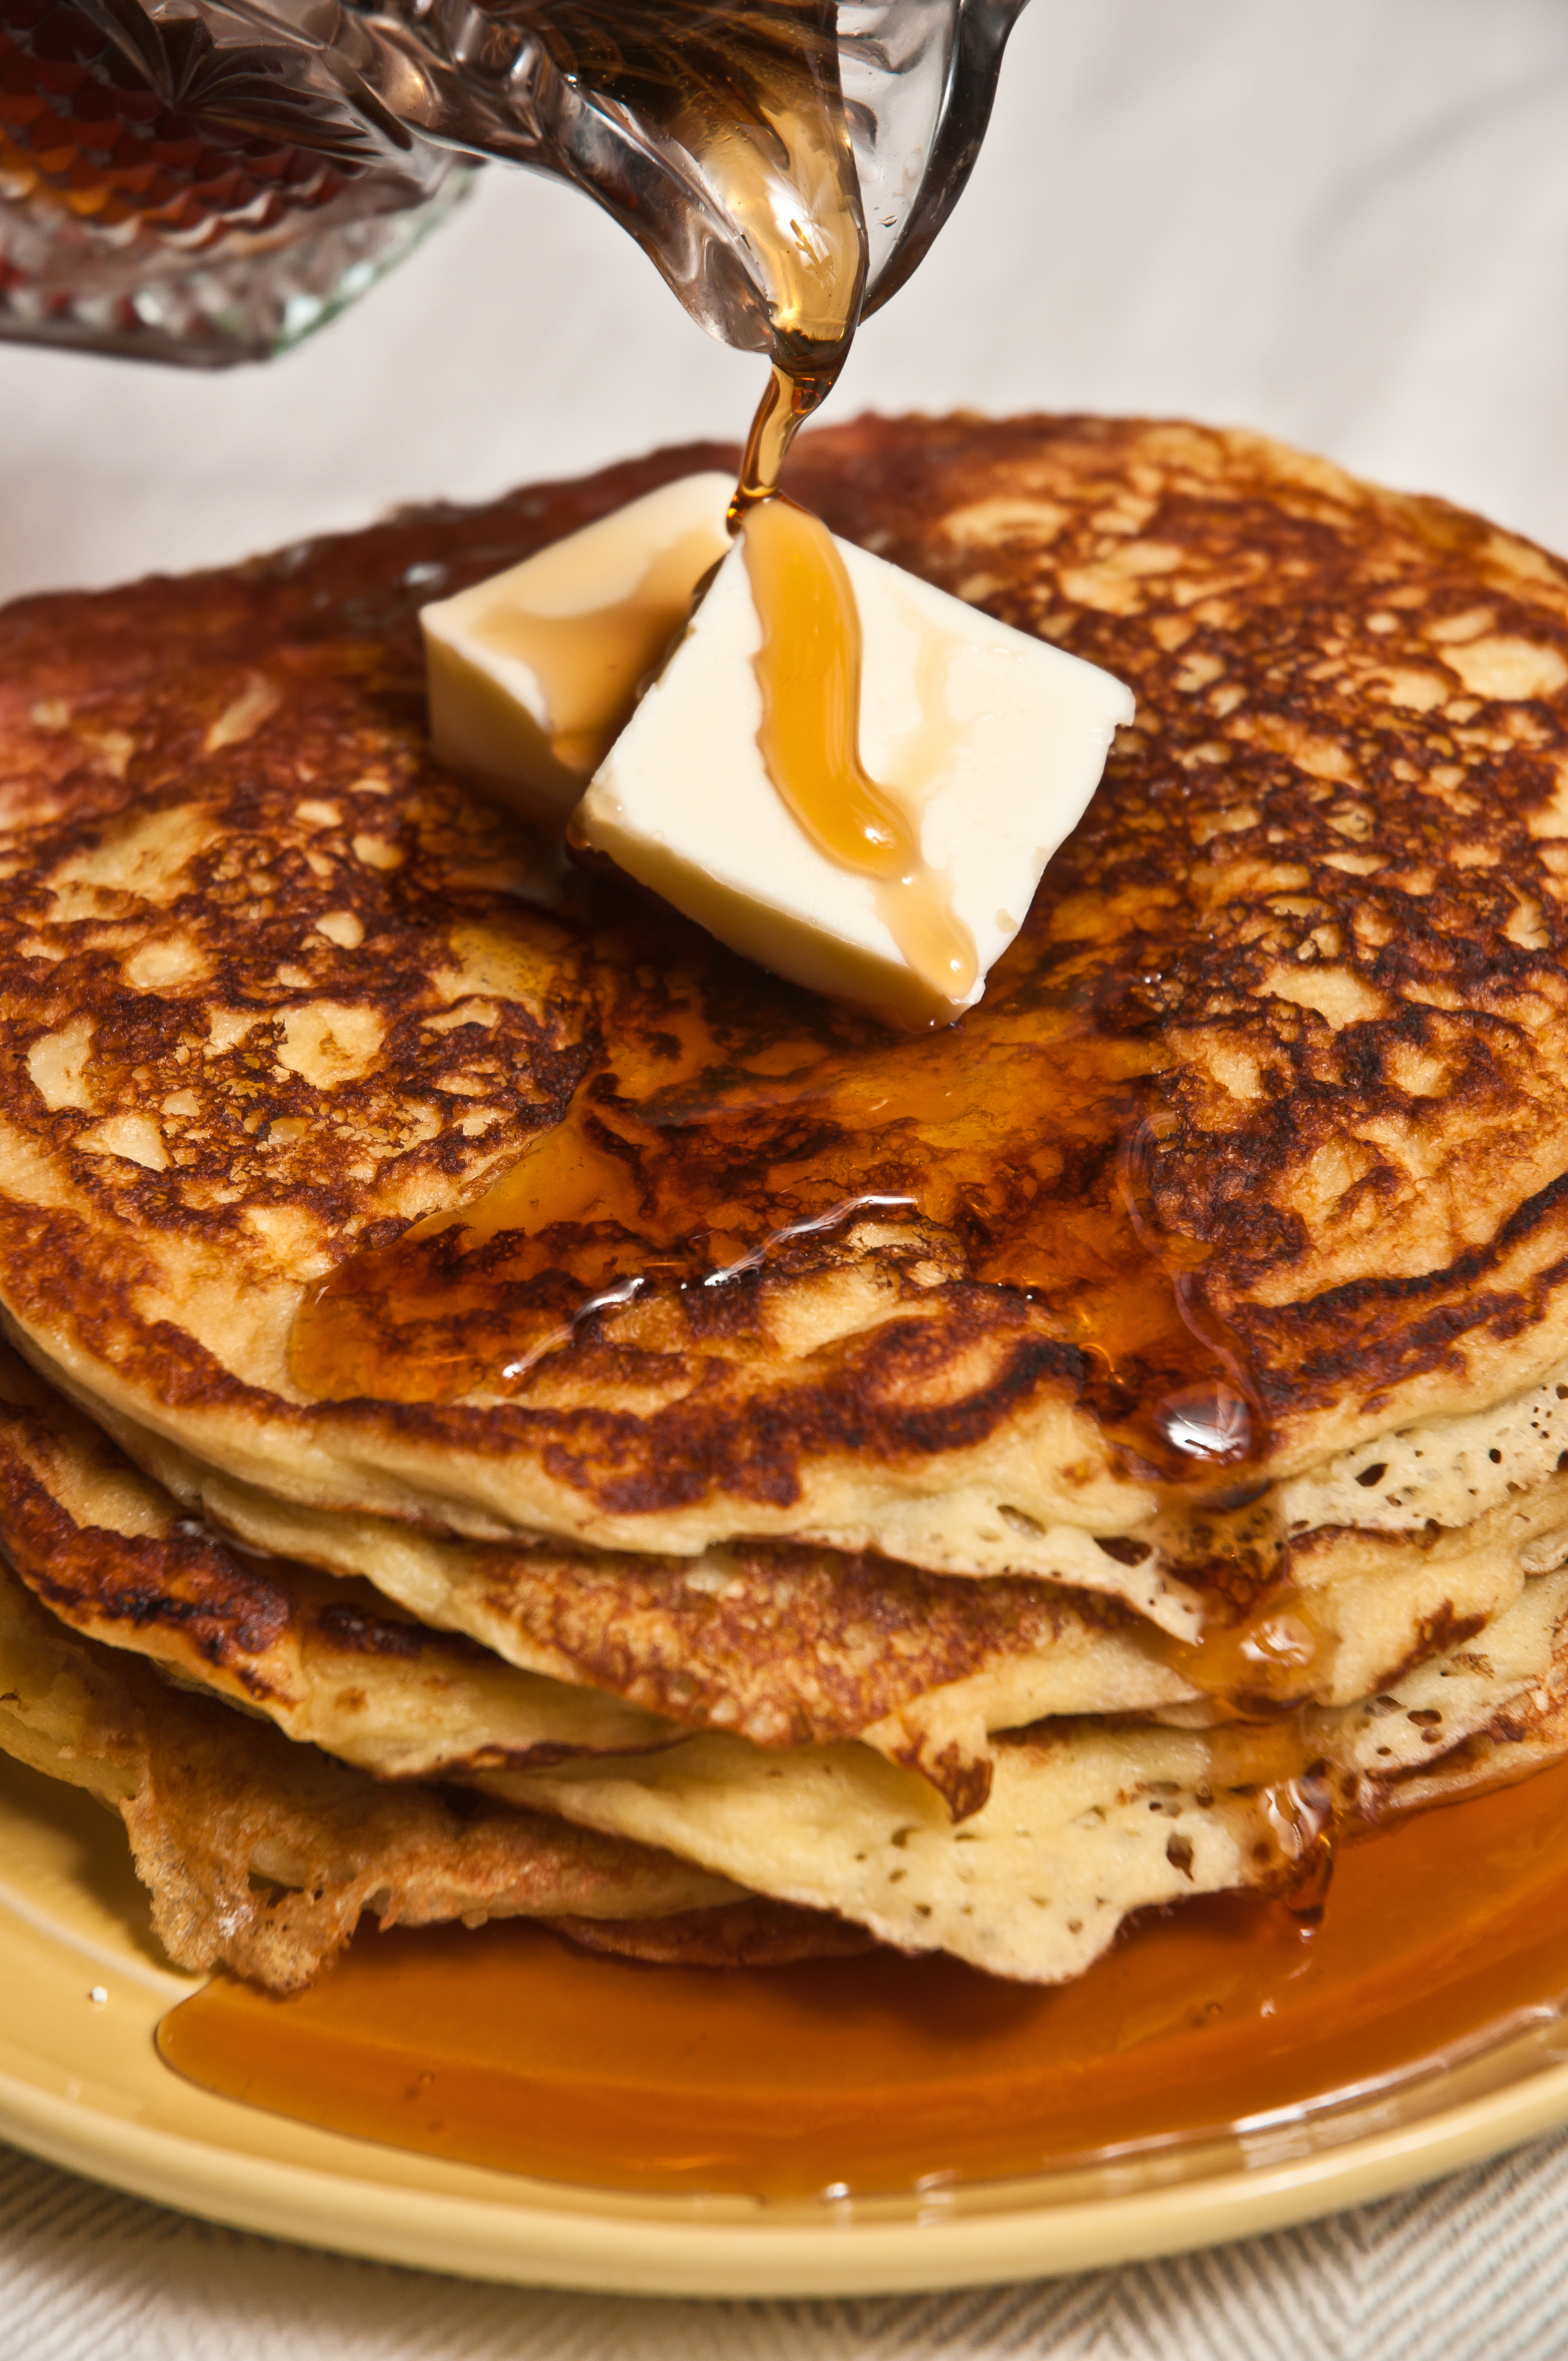 Light-as-a-Feather Whole Wheat Pancakes